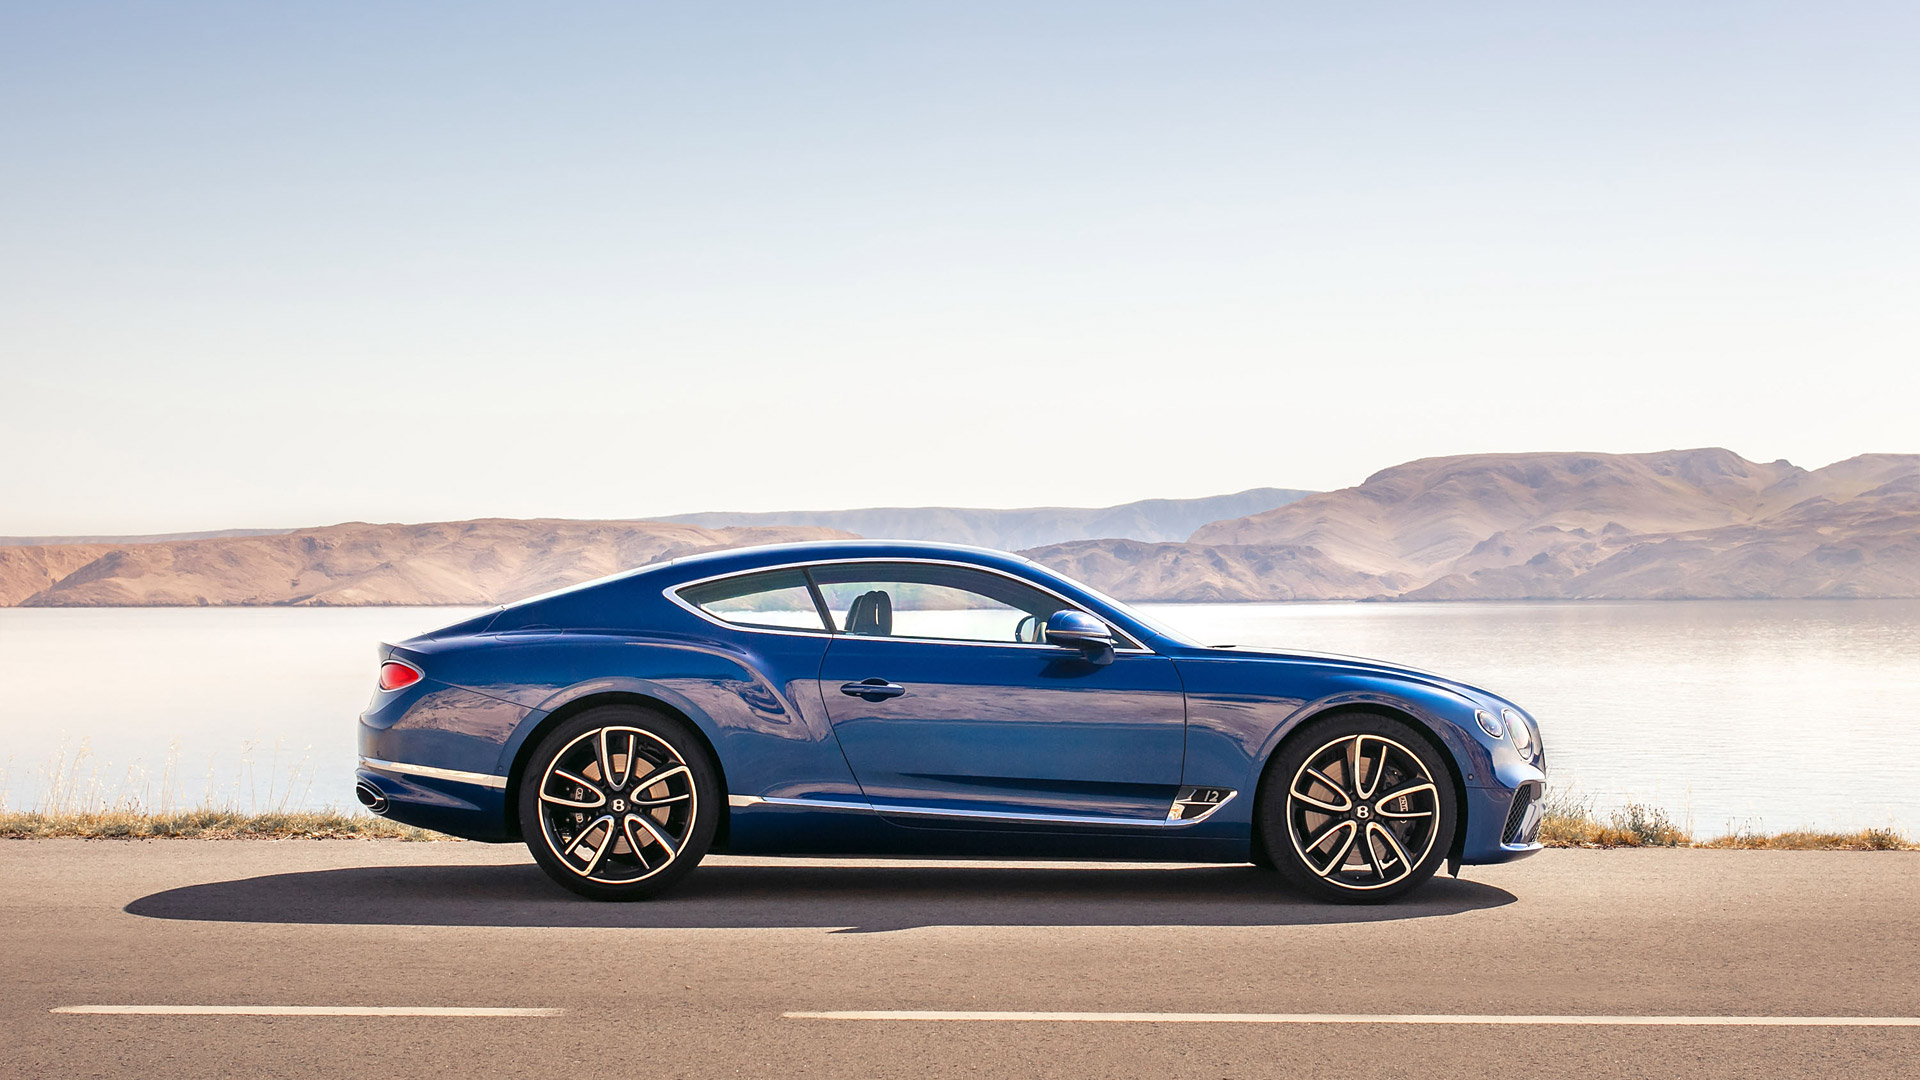 1920x1080 - Bentley Continental GT Wallpapers 6